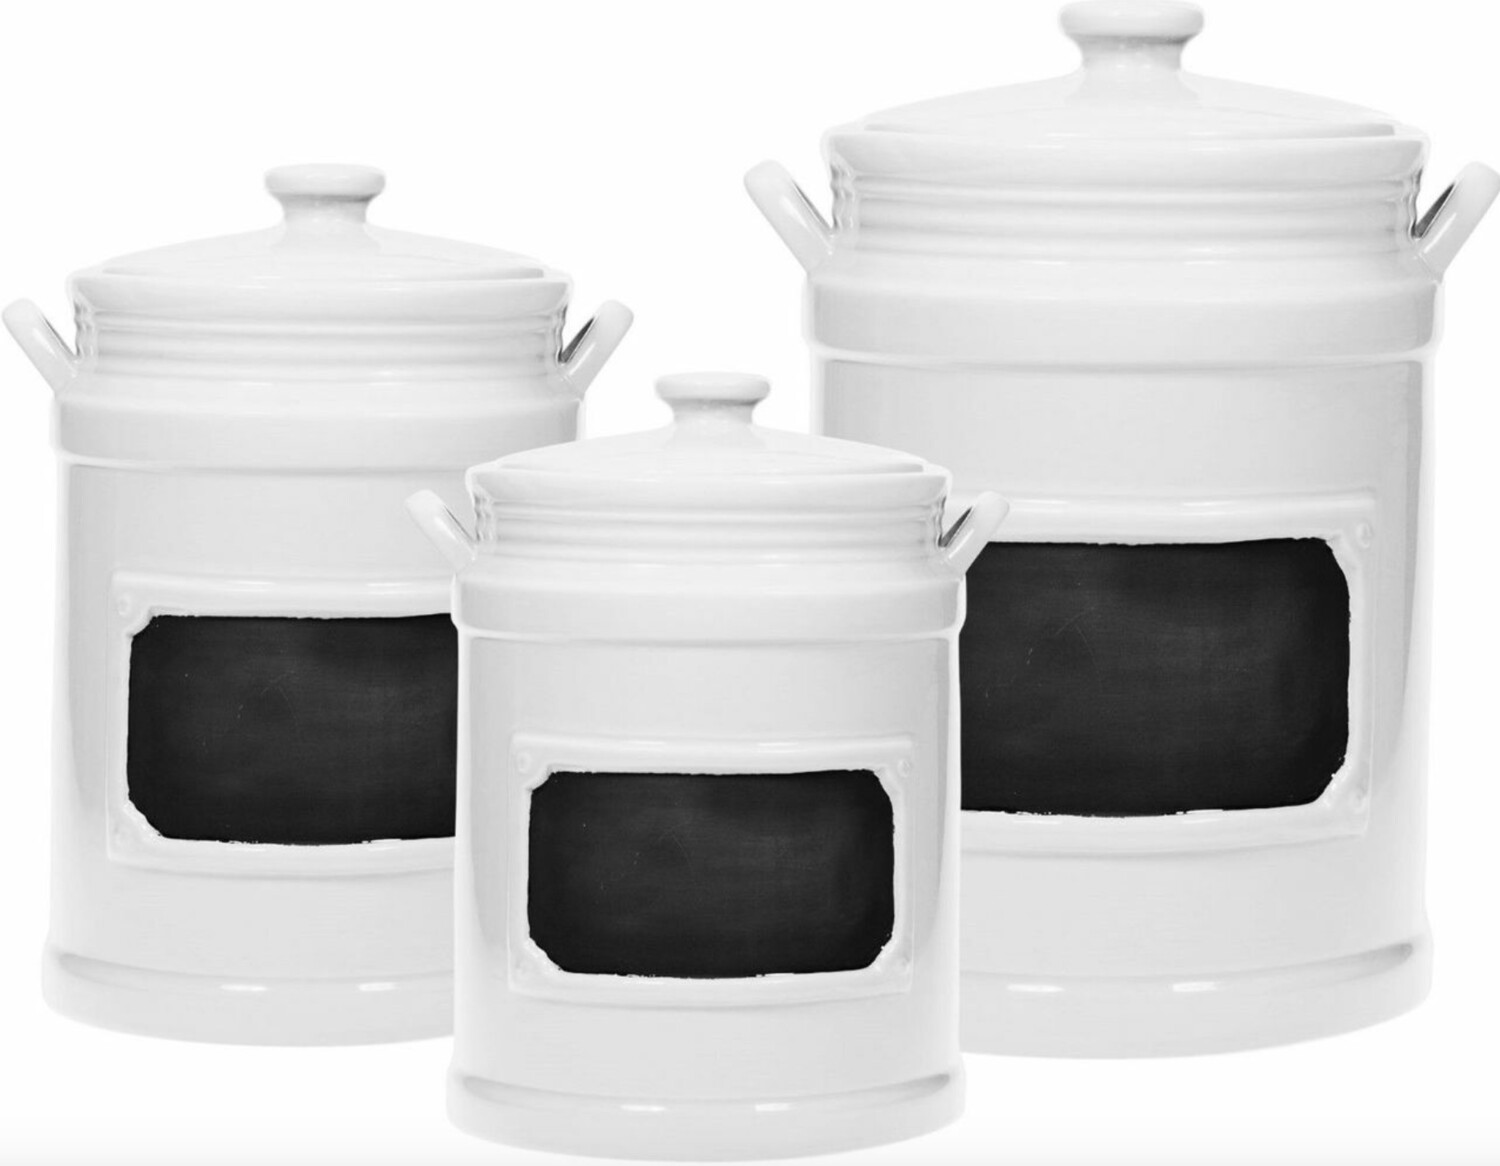 Set of 3 White Chalkboard Canisters